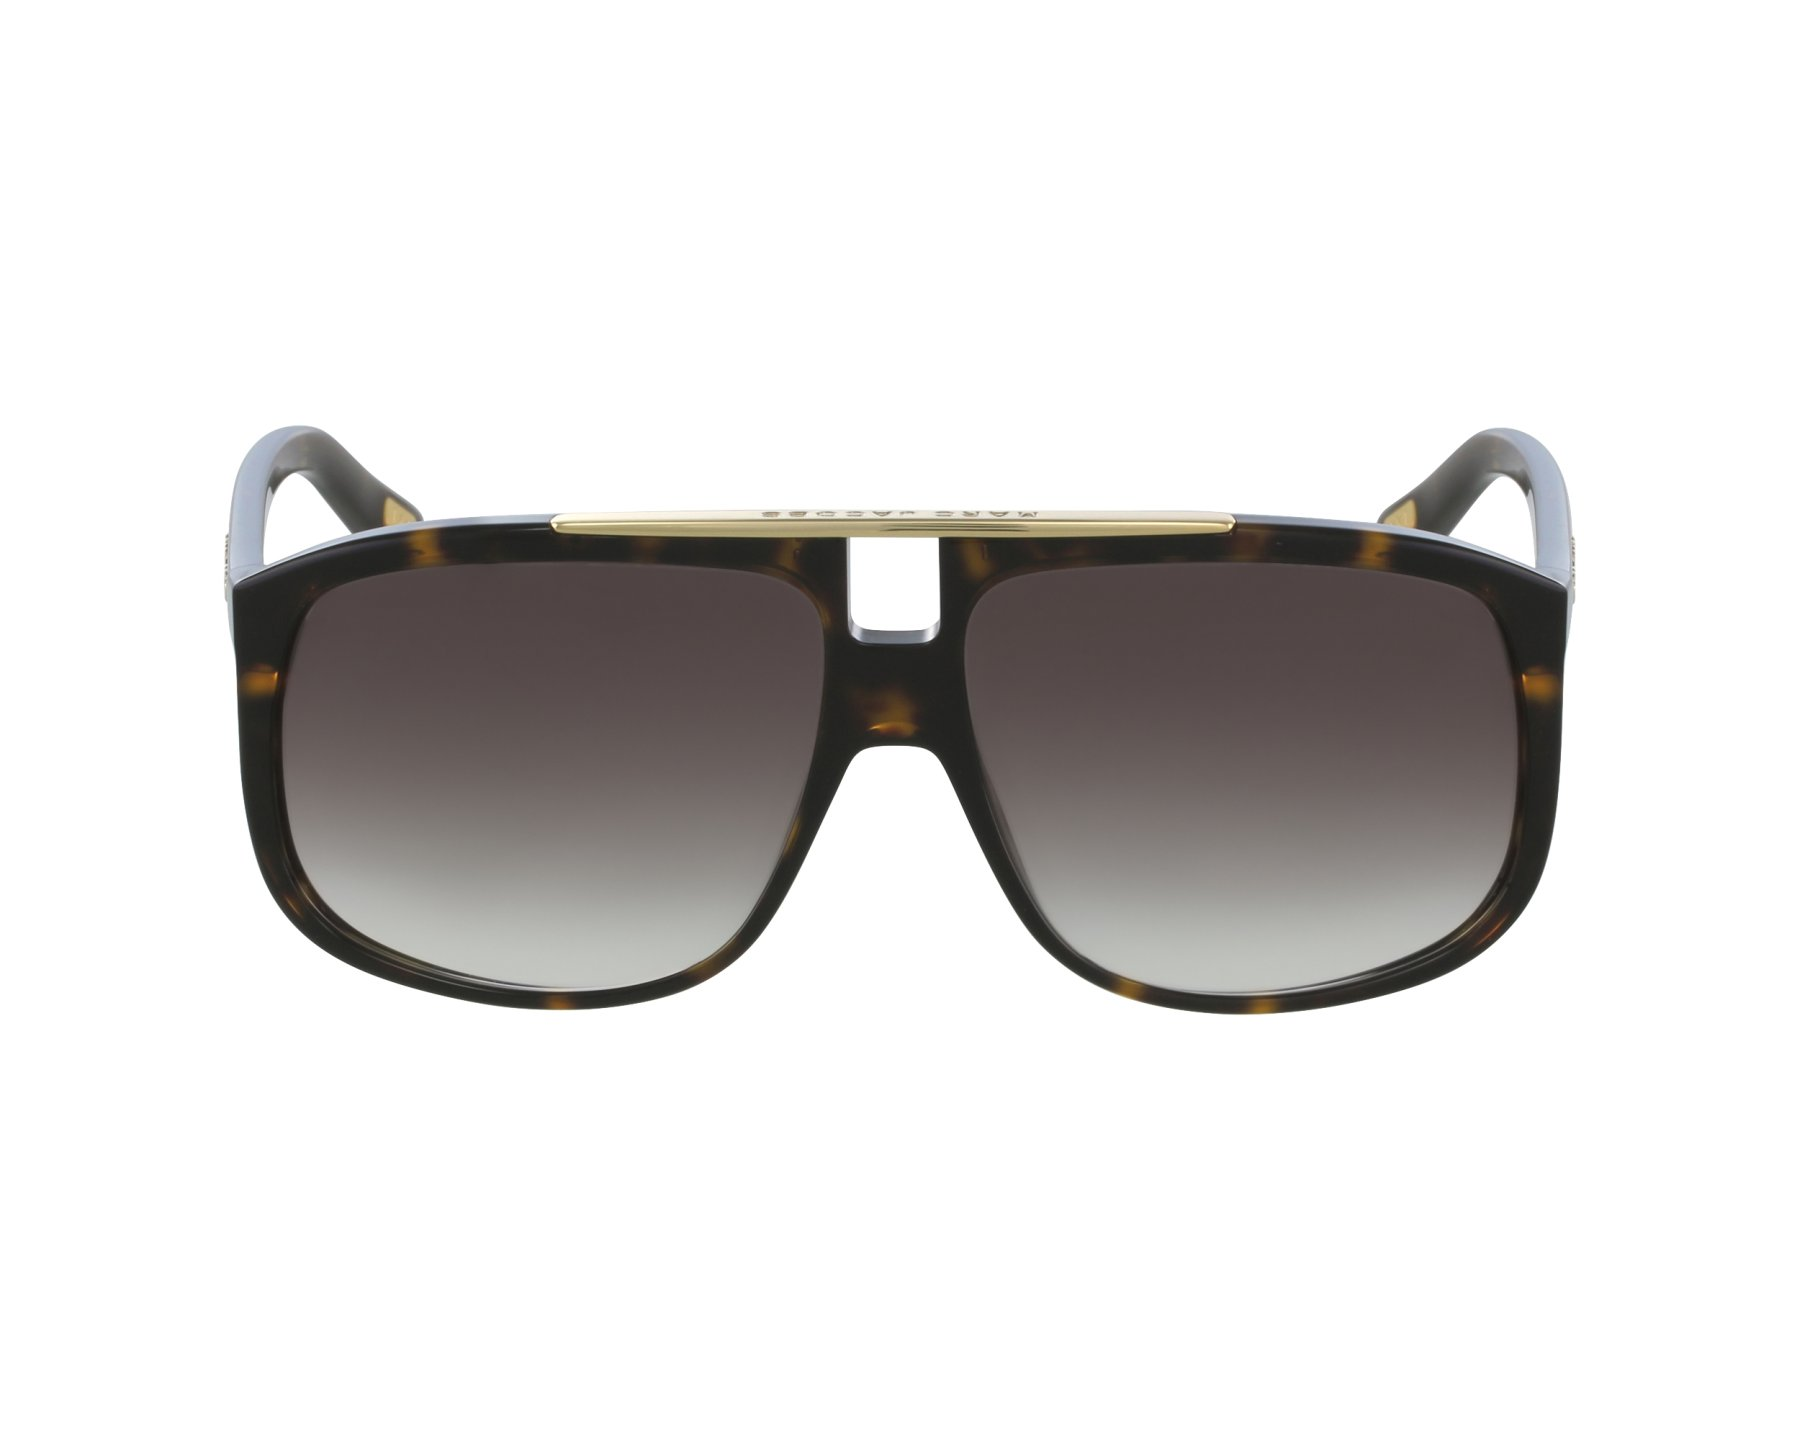 fe0d87ecf96d4 Sunglasses Marc Jacobs MJ-252-S 086 JS 60-13 Havana profile